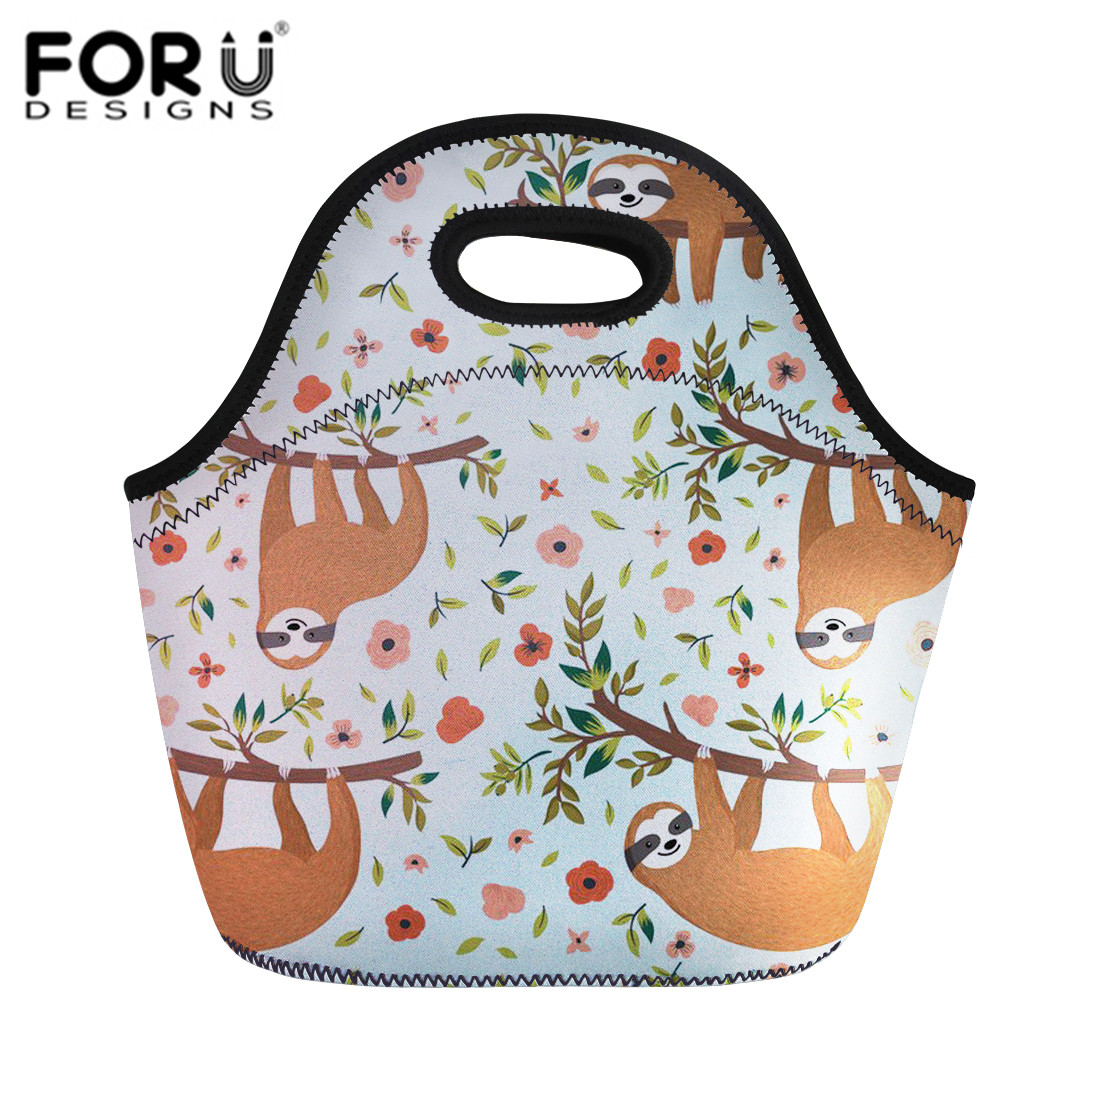 FORUDESIGNS Cute Sloth Printing Lunch Bags For Kid Thermal Insulated Lunch Box Food Picnic Bags Casual Tote Handbag Dropshipping